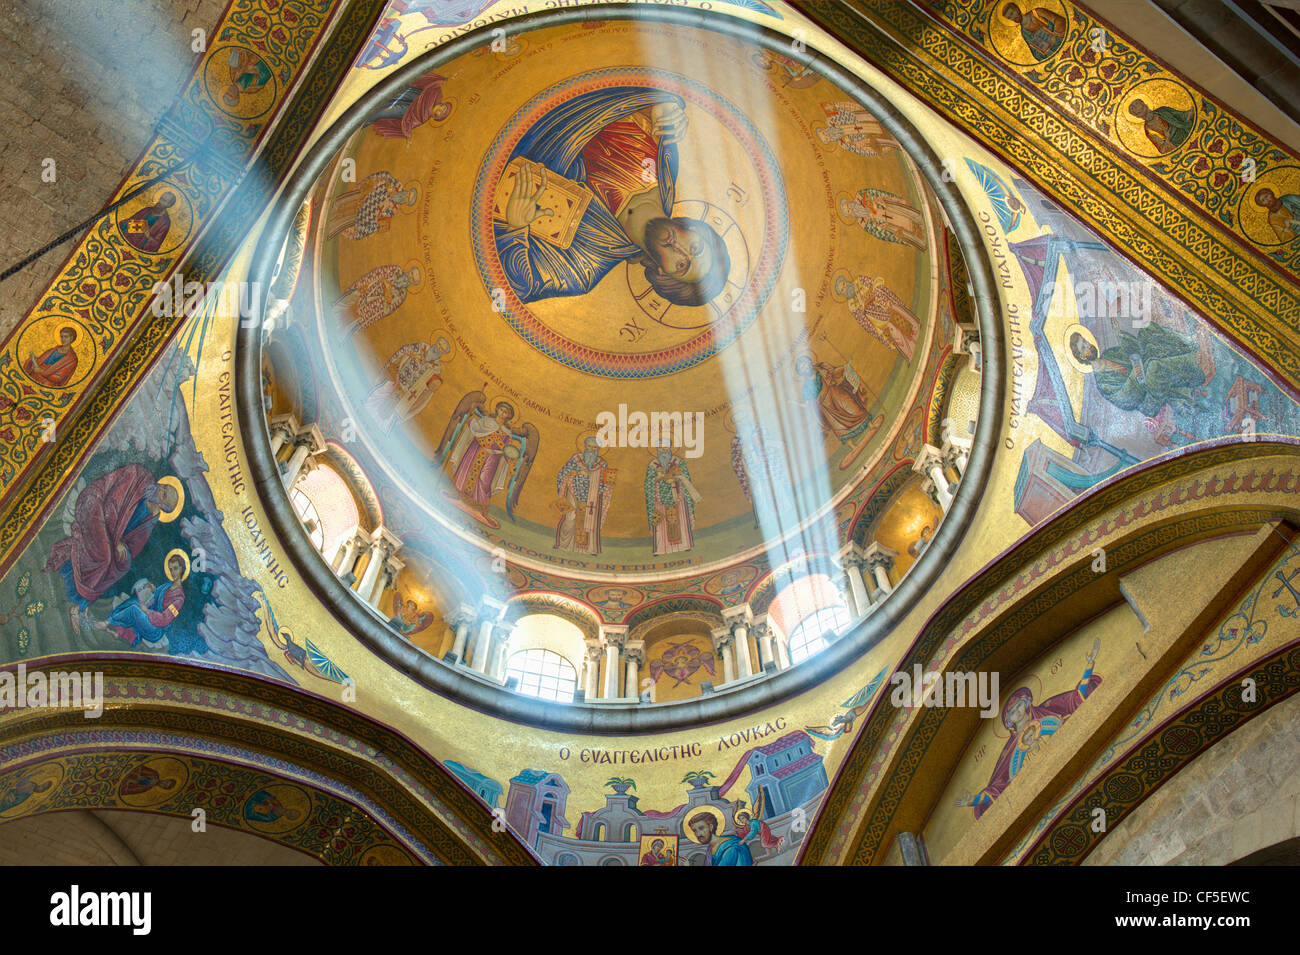 The dome of the Catholicon which the church at the center of the Church of the Holy Sepulchre in Jerusalem, Israel. - Stock Image